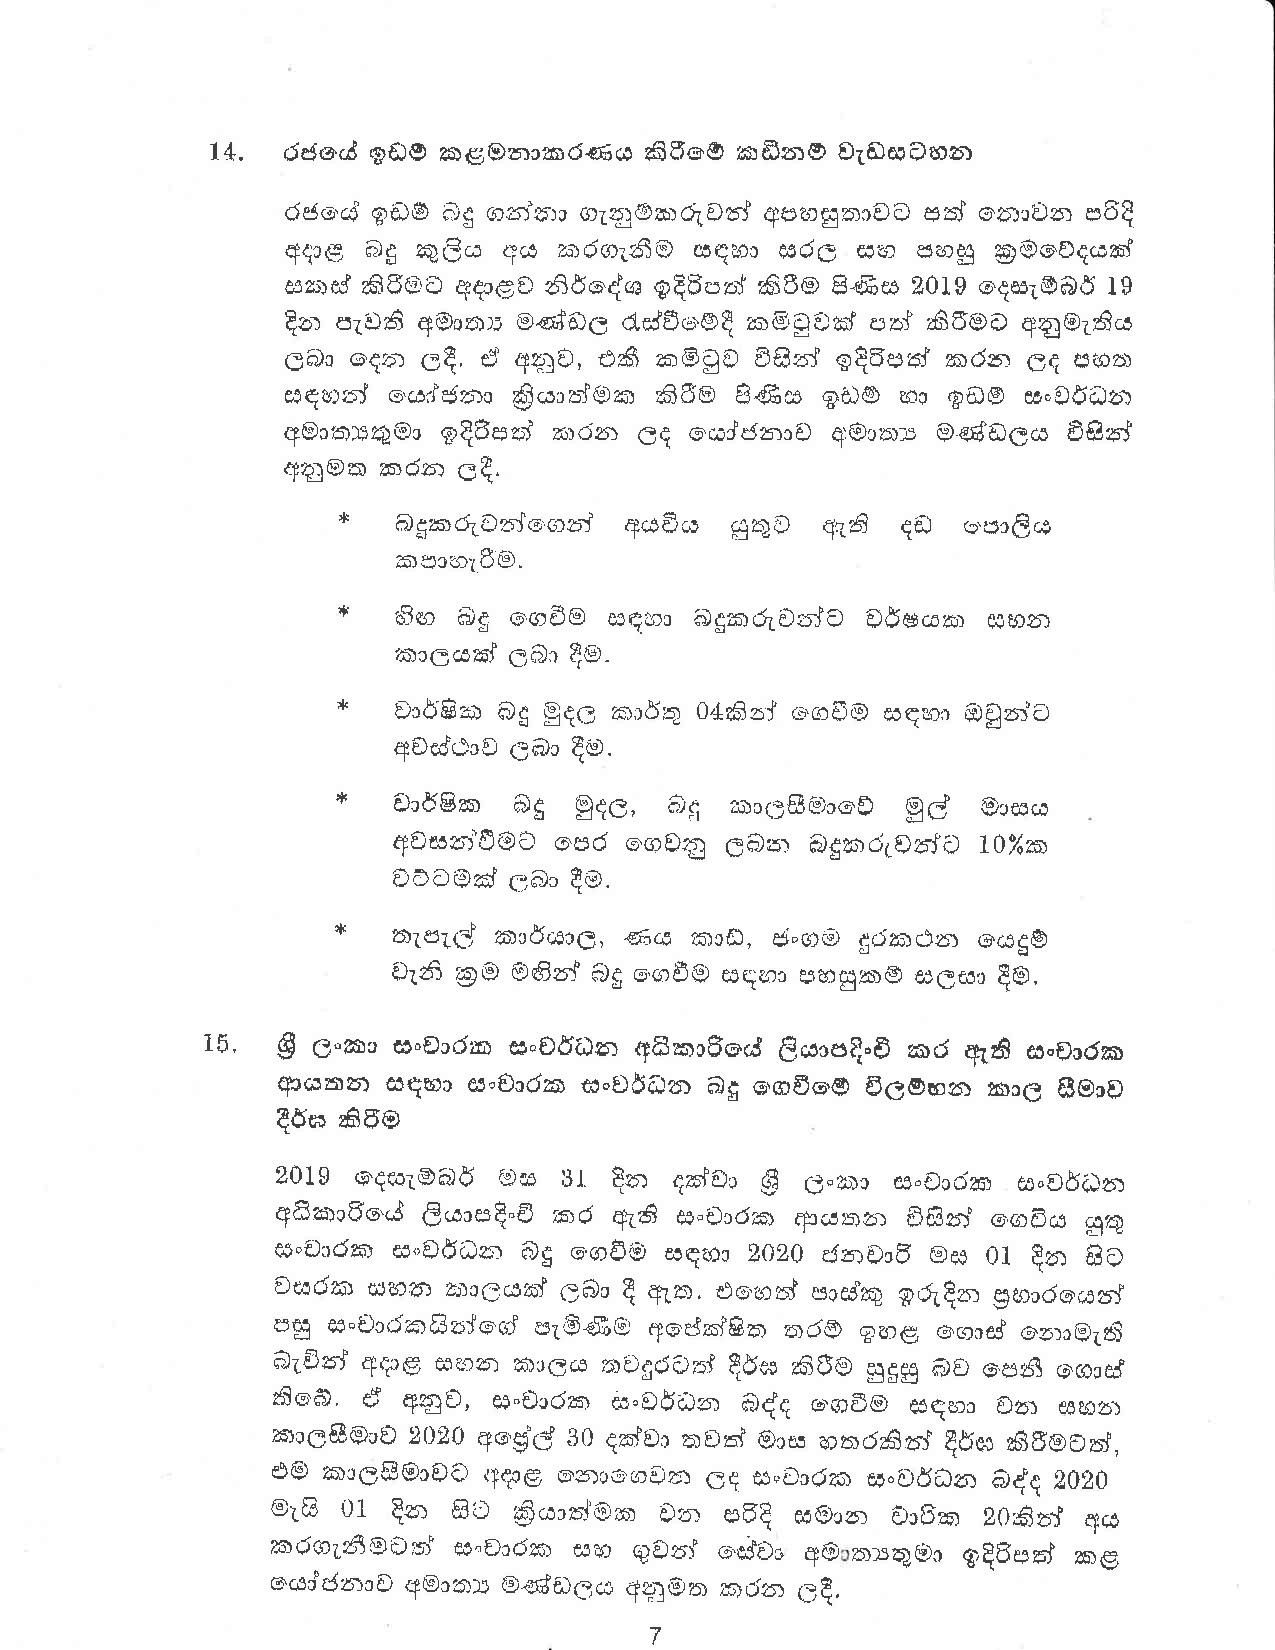 Cabinet Decision on 27.02.2020 page 007